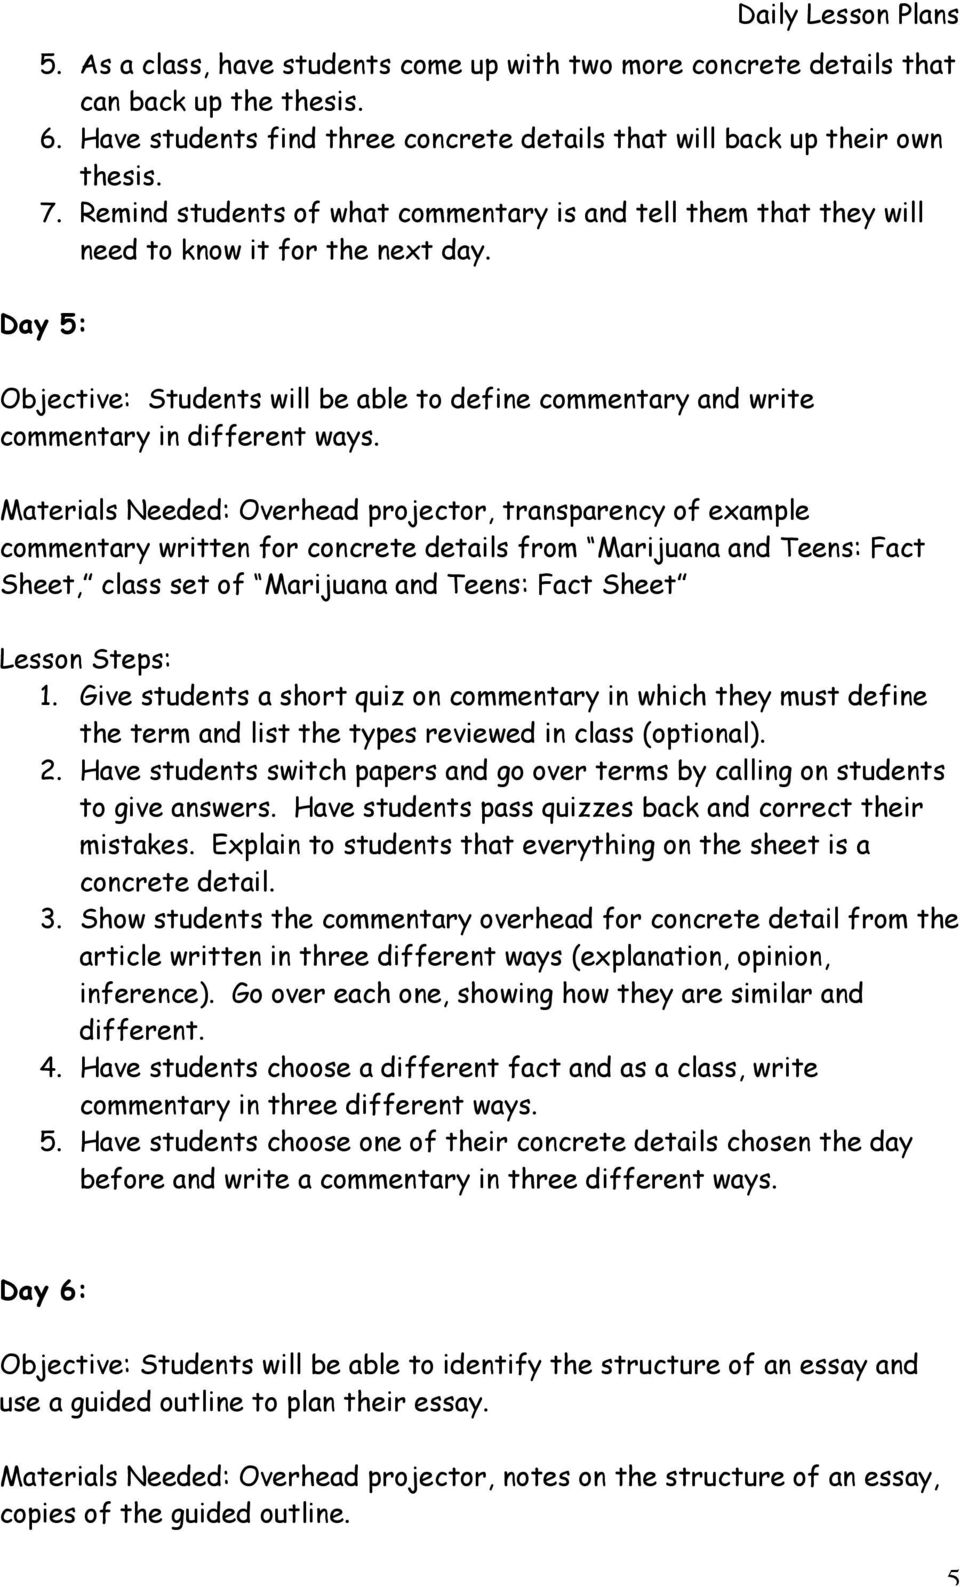 Day 5: Objective: Students will be able to define commentary and write commentary in different ways.